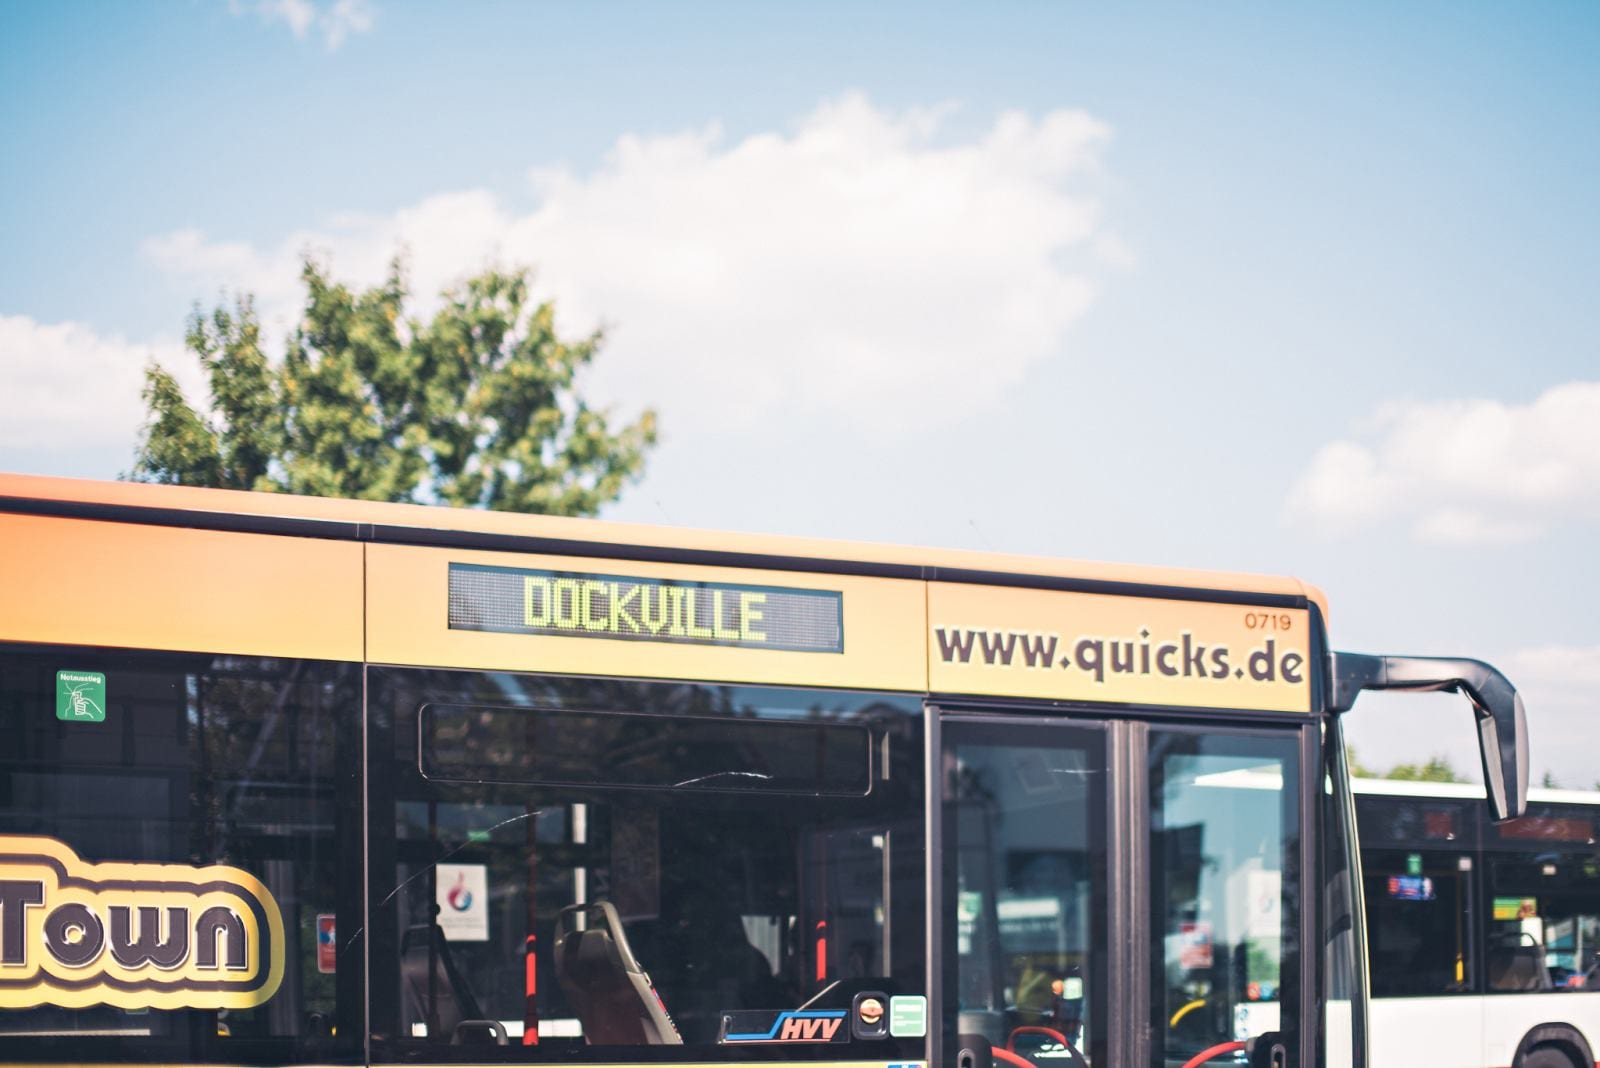 001 ms dockville 2015 bus - MS Dockville 2015